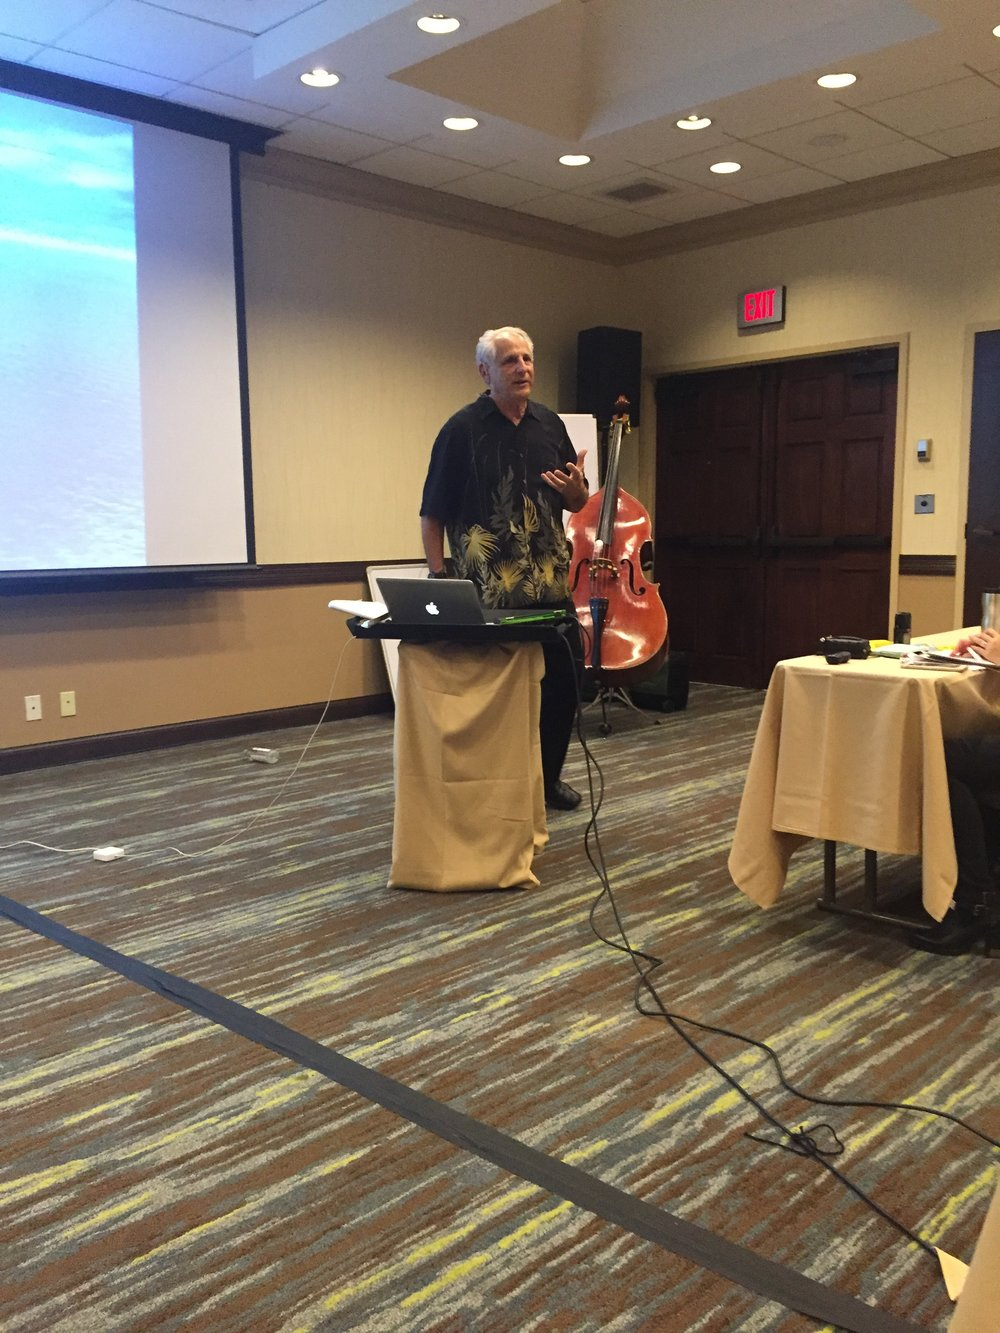 Barry Green, The Inner Game of Music Masterclass at IVACON 2017, San Diego.